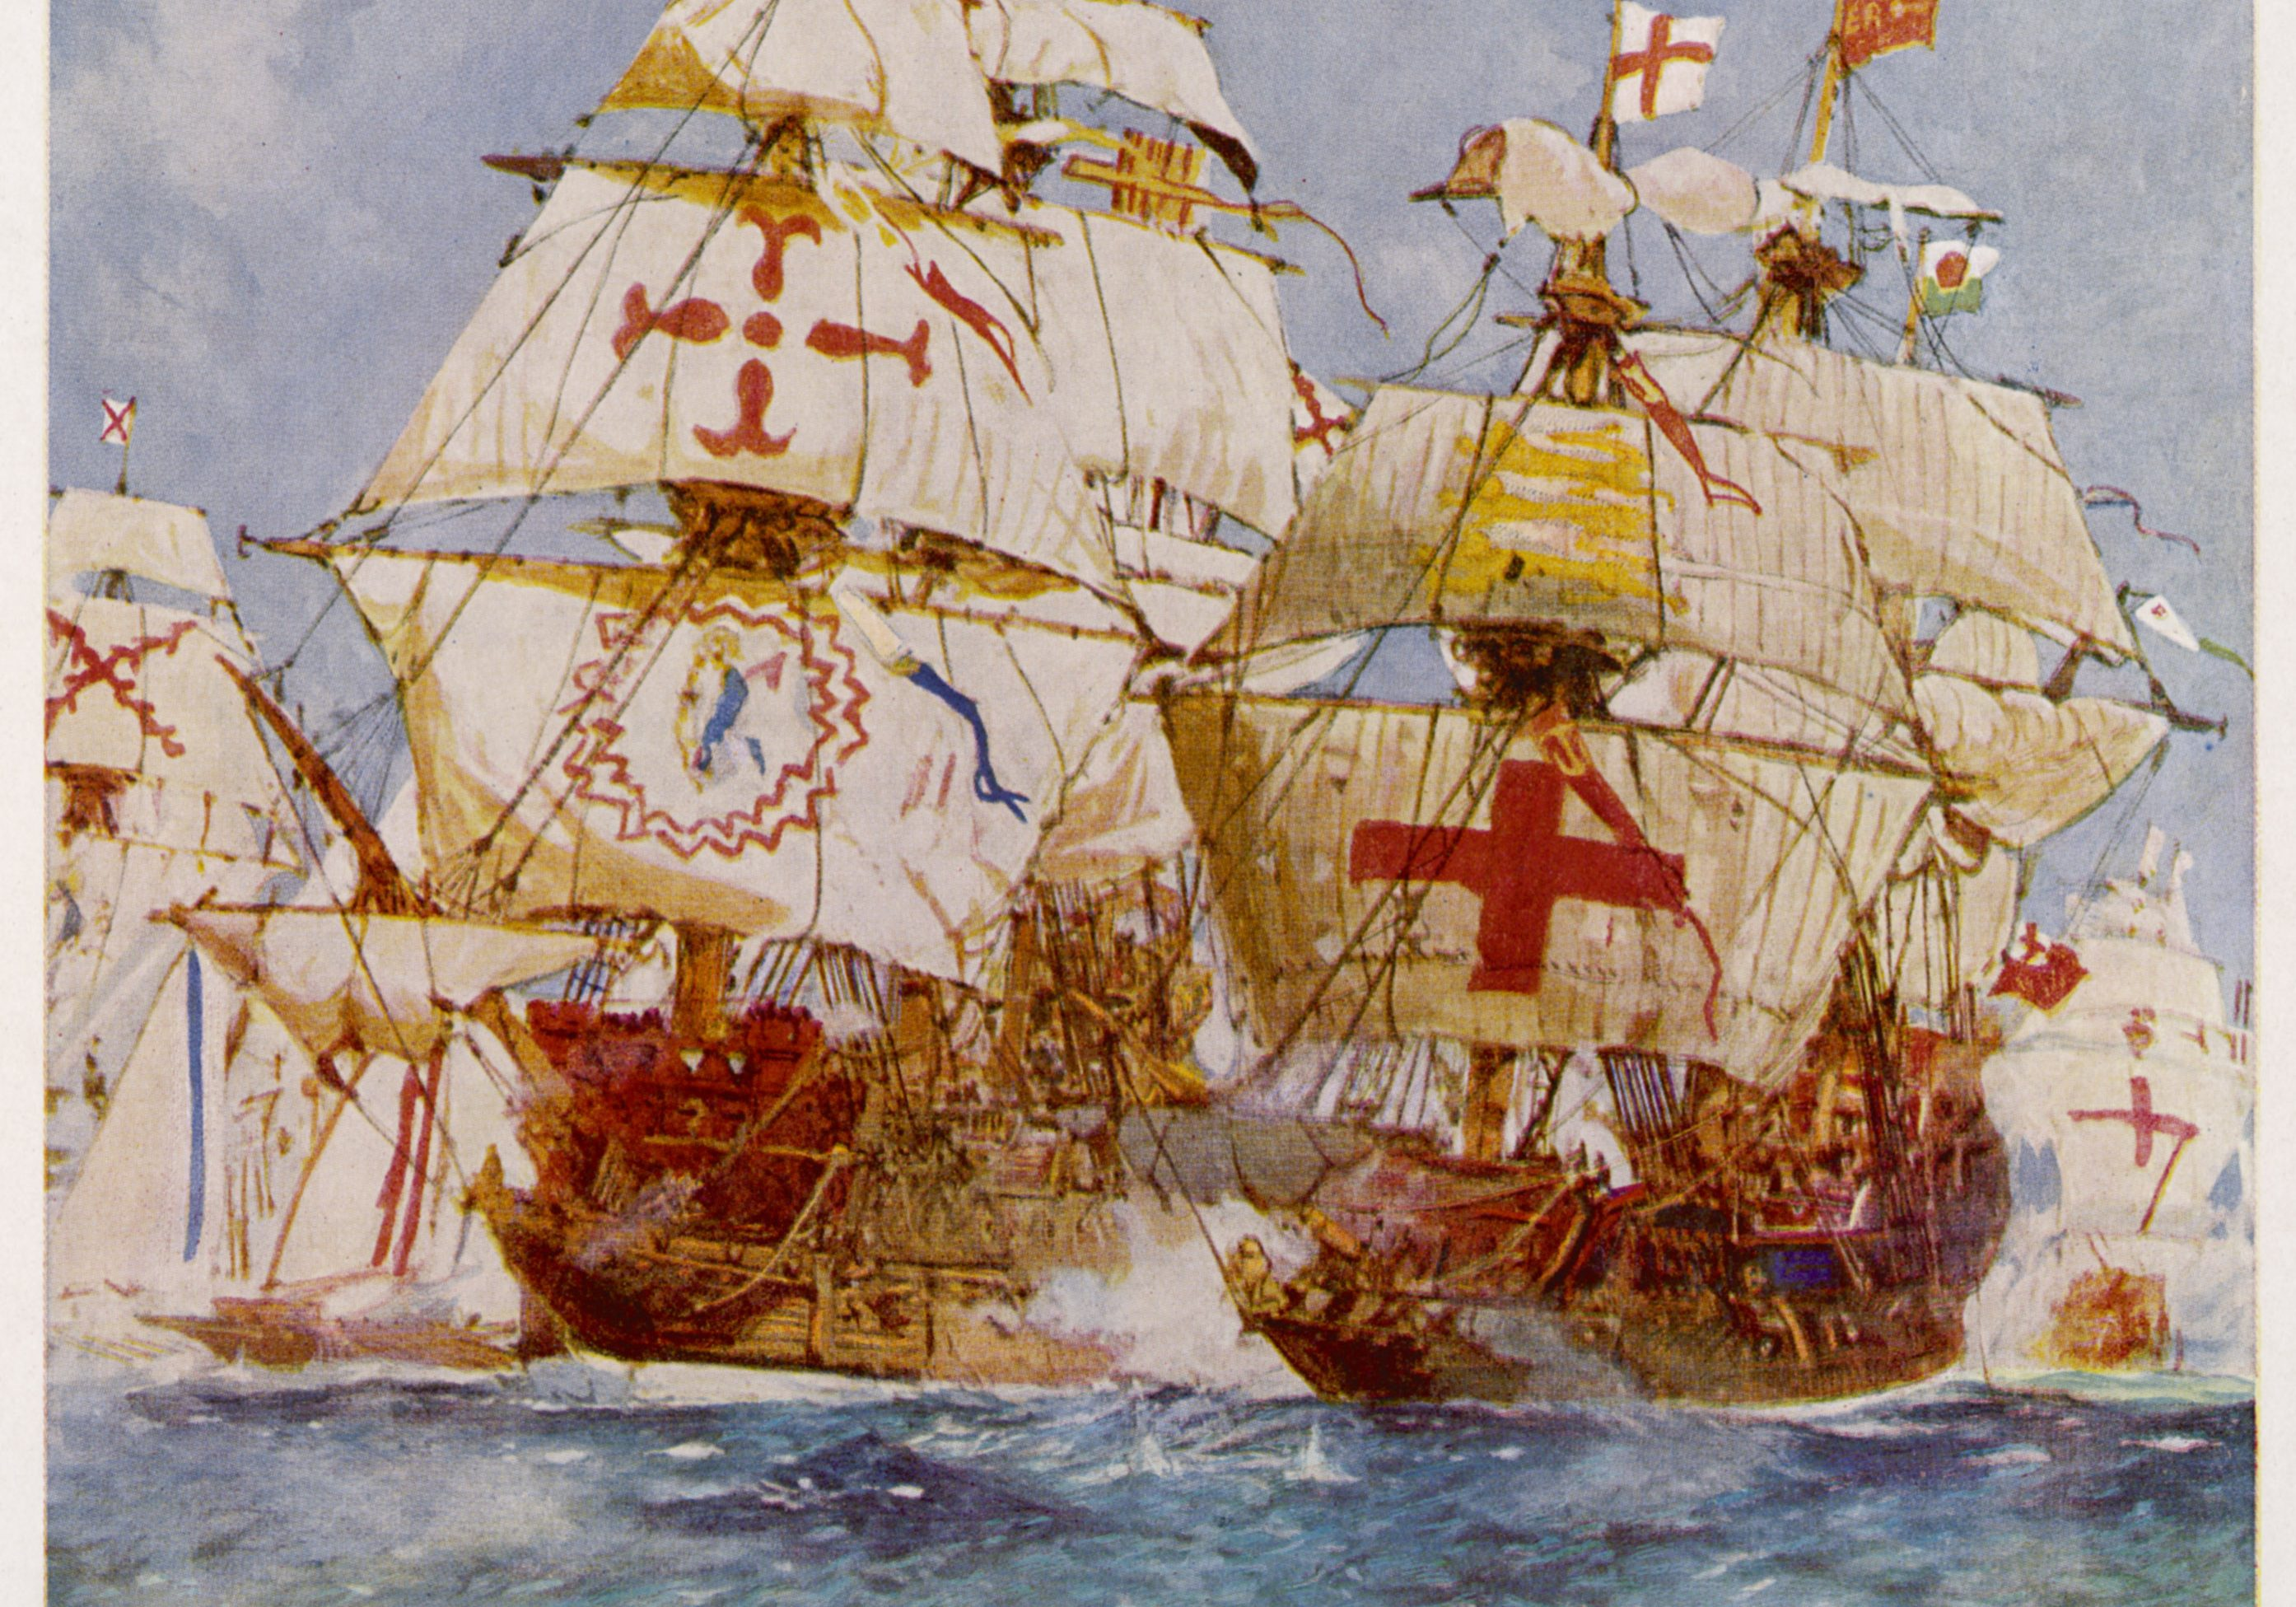 Ark Raleigh and Spanish Galleons